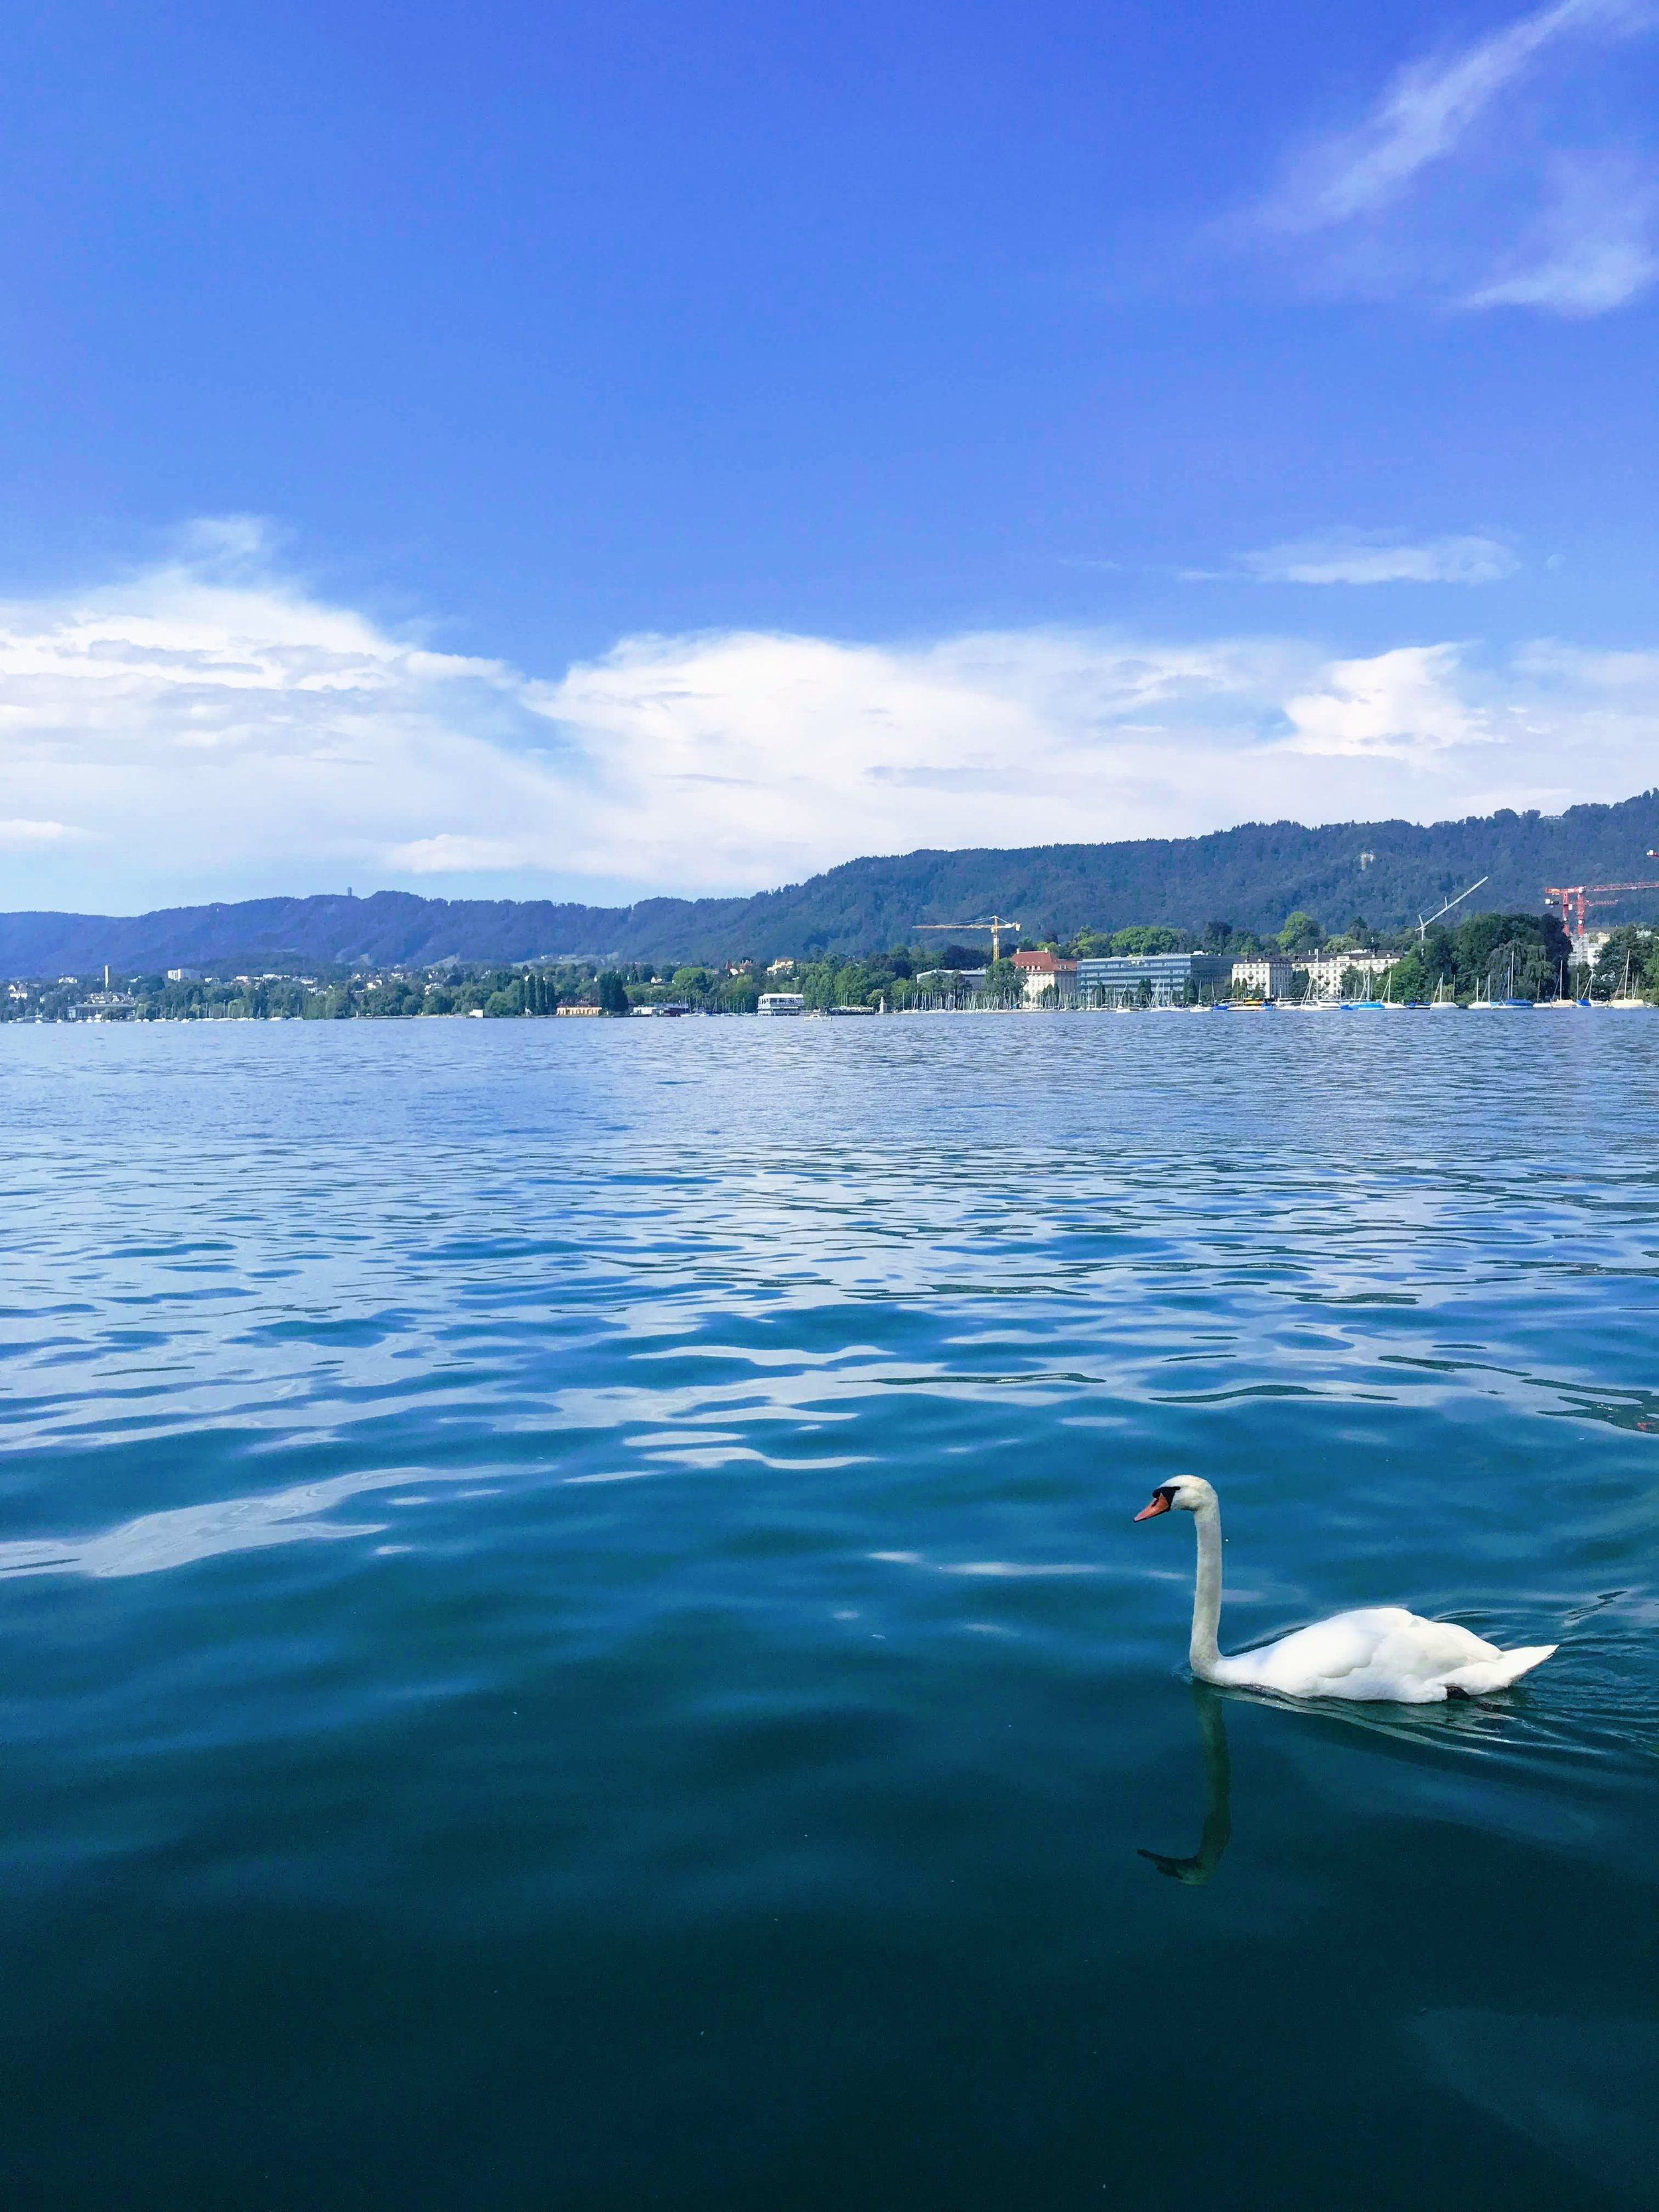 Swans near Bellevue on Lake Zurich